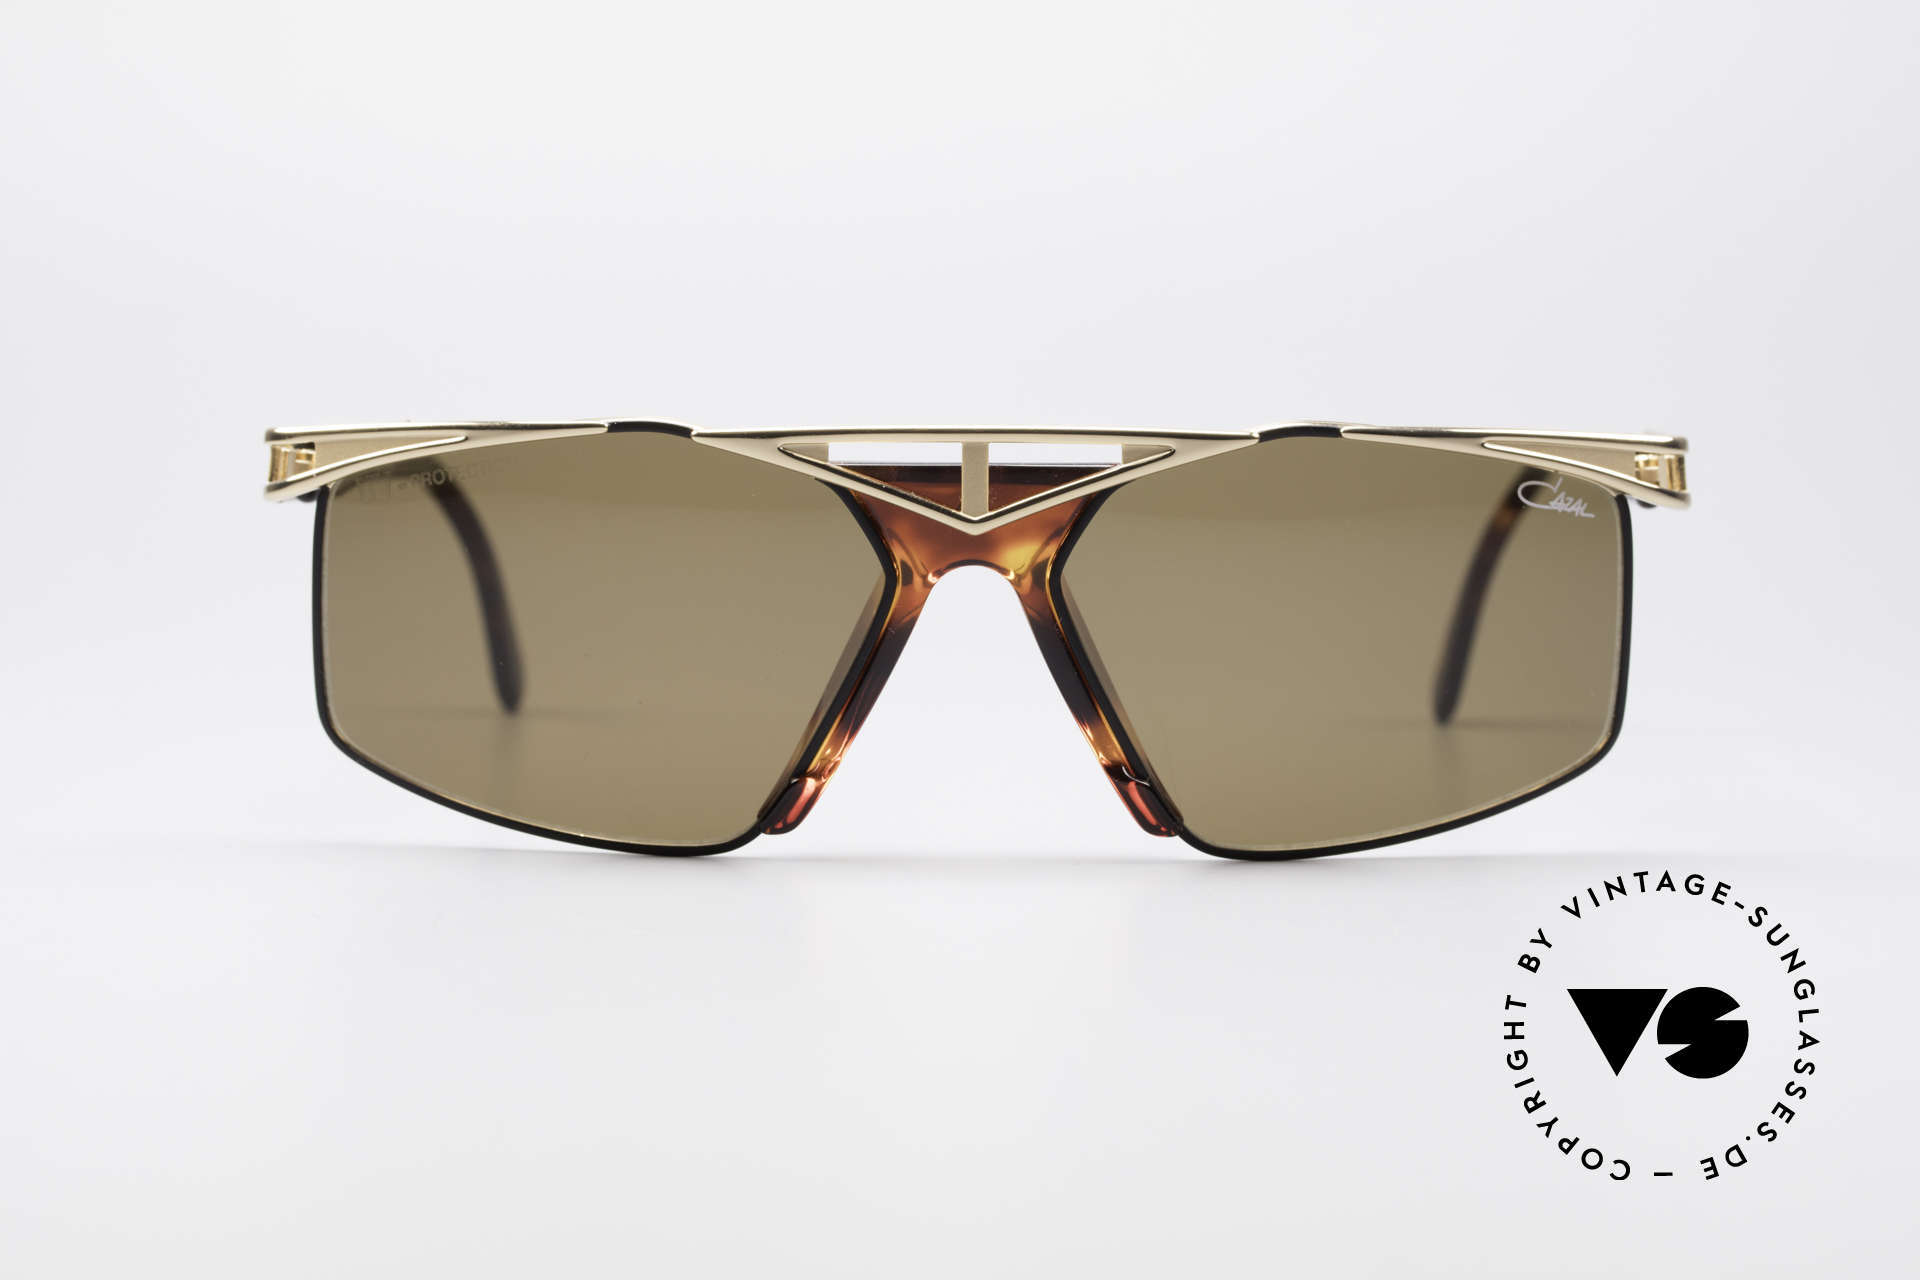 Cazal 962 90s Designer Sunglasses, top wearing comfort thanks to 1st class craftsmanship, Made for Men and Women